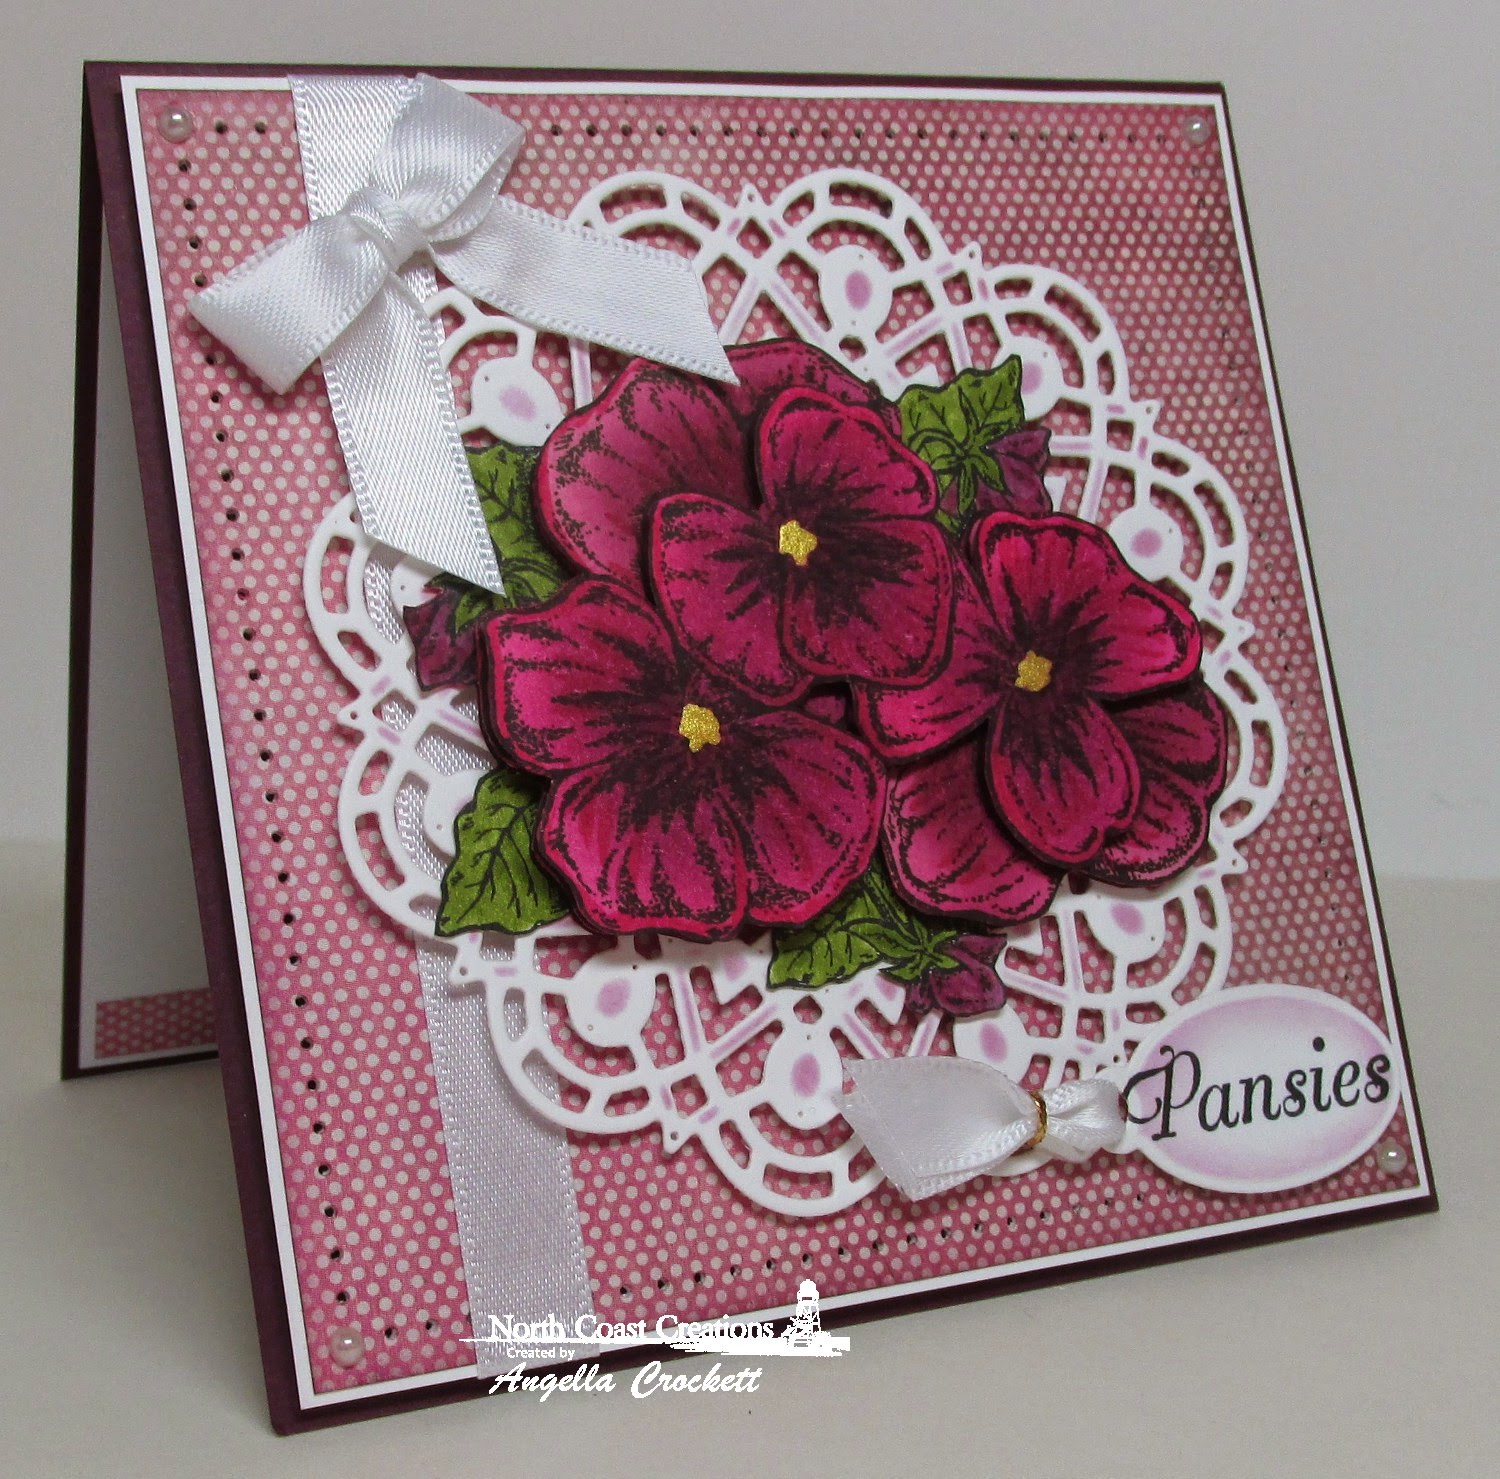 North Coast Creations Pansies, ODBD Custom Doily Dies, ODBD Custom Mini Tags Dies,ard Designer Angie Crockett